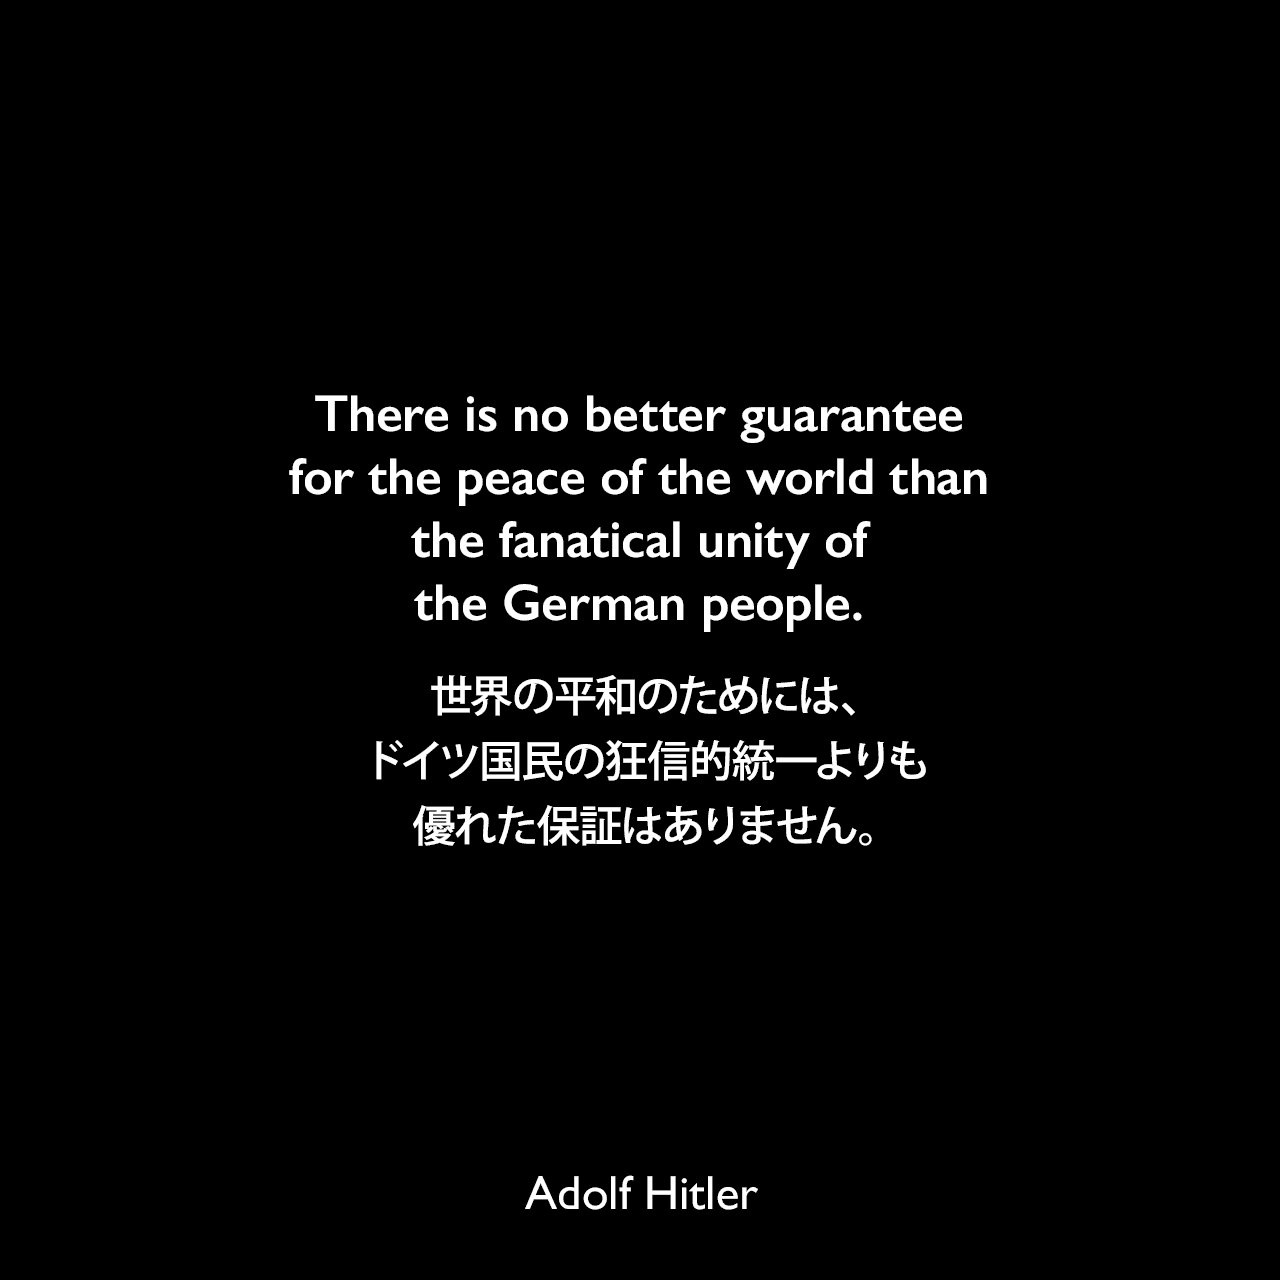 There is no better guarantee for the peace of the world than the fanatical unity of the German people.世界の平和のためには、ドイツ国民の狂信的統一よりも優れた保証はありません。- 1933年10月22日ケルハイムでの演説より(1939年9月26日タイムズ紙より引用)Adolf Hitler